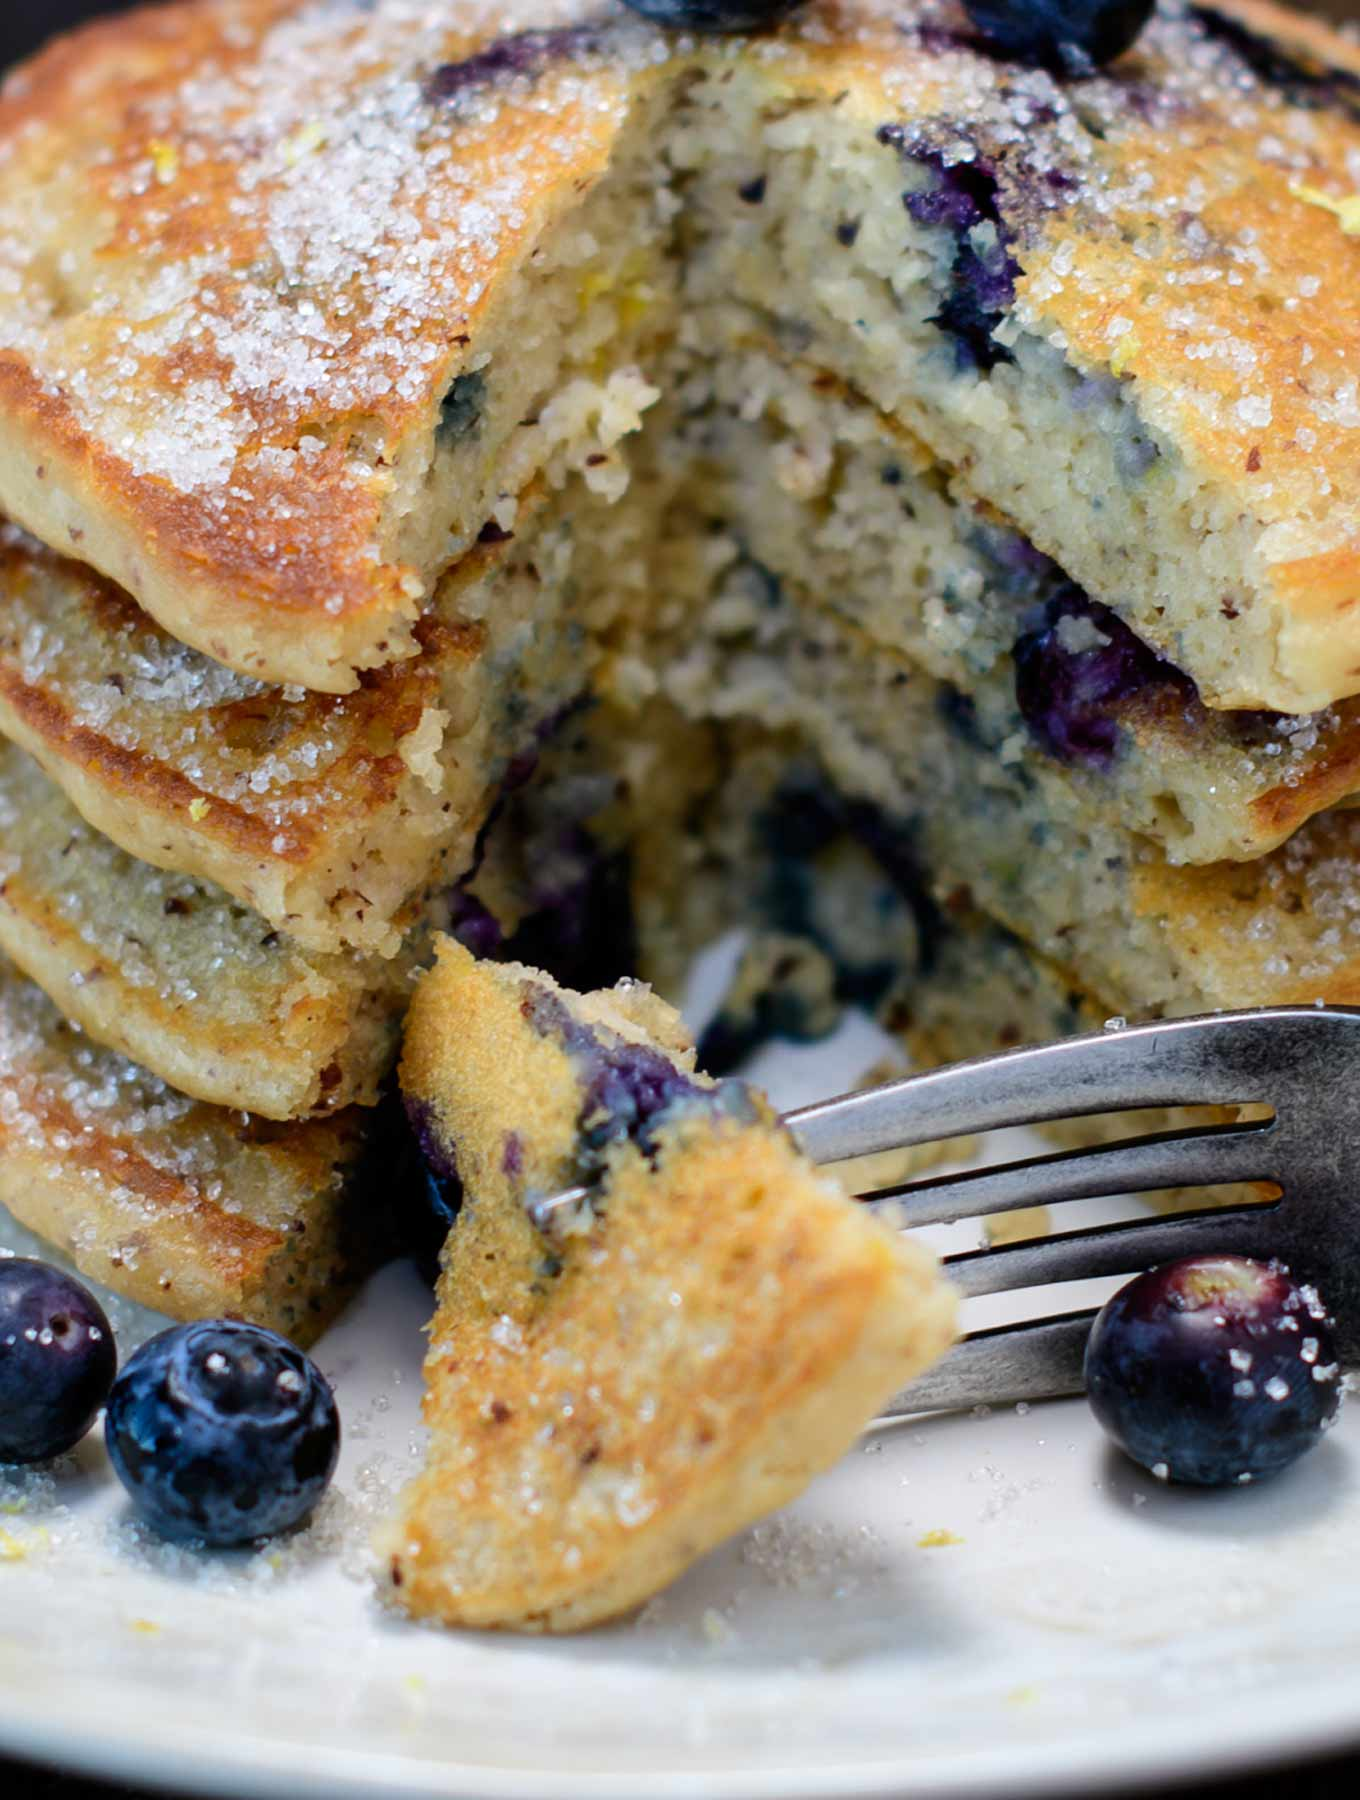 Stack of gluten free lemon blueberry pancakes with a fork